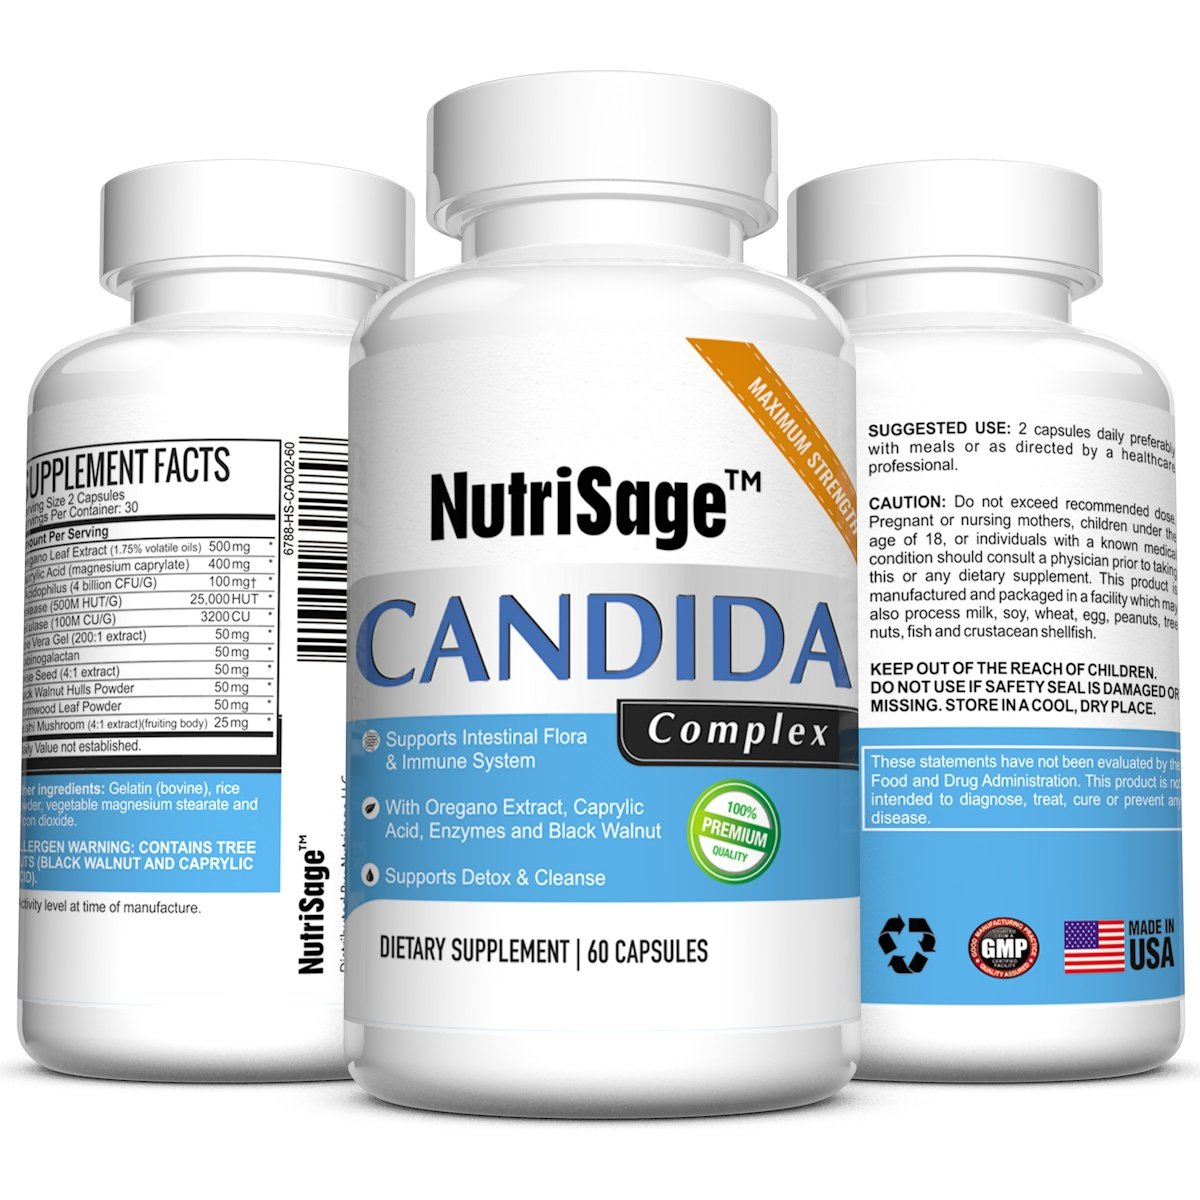 Premium Candida Cleanse - Fights Candida Yeast Infection & Overgrowth -Natural Cleansing Detox Supplement with Antifungal Cleaner Herbs, Oregano & Caprylic Acid For Candida Fungus - Order Risk Free by NutriSage